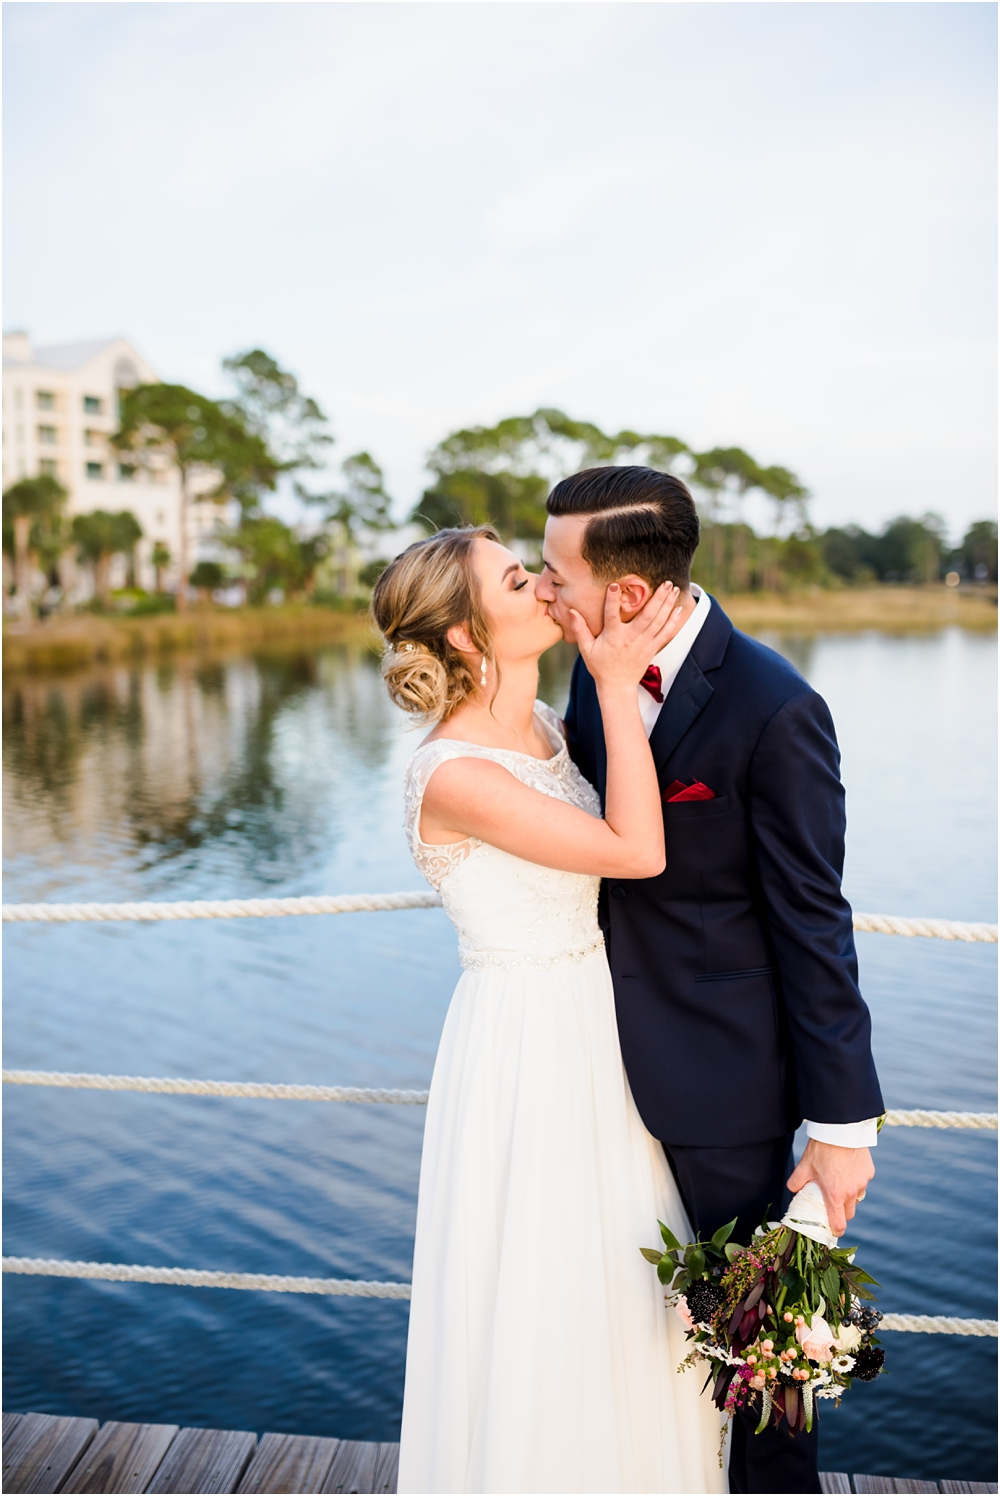 florida-wedding-photographer-30a-panama-city-beach-dothan-tallahassee-kiersten-grant-photography-weddings-family-engagement-photos-115.jpg